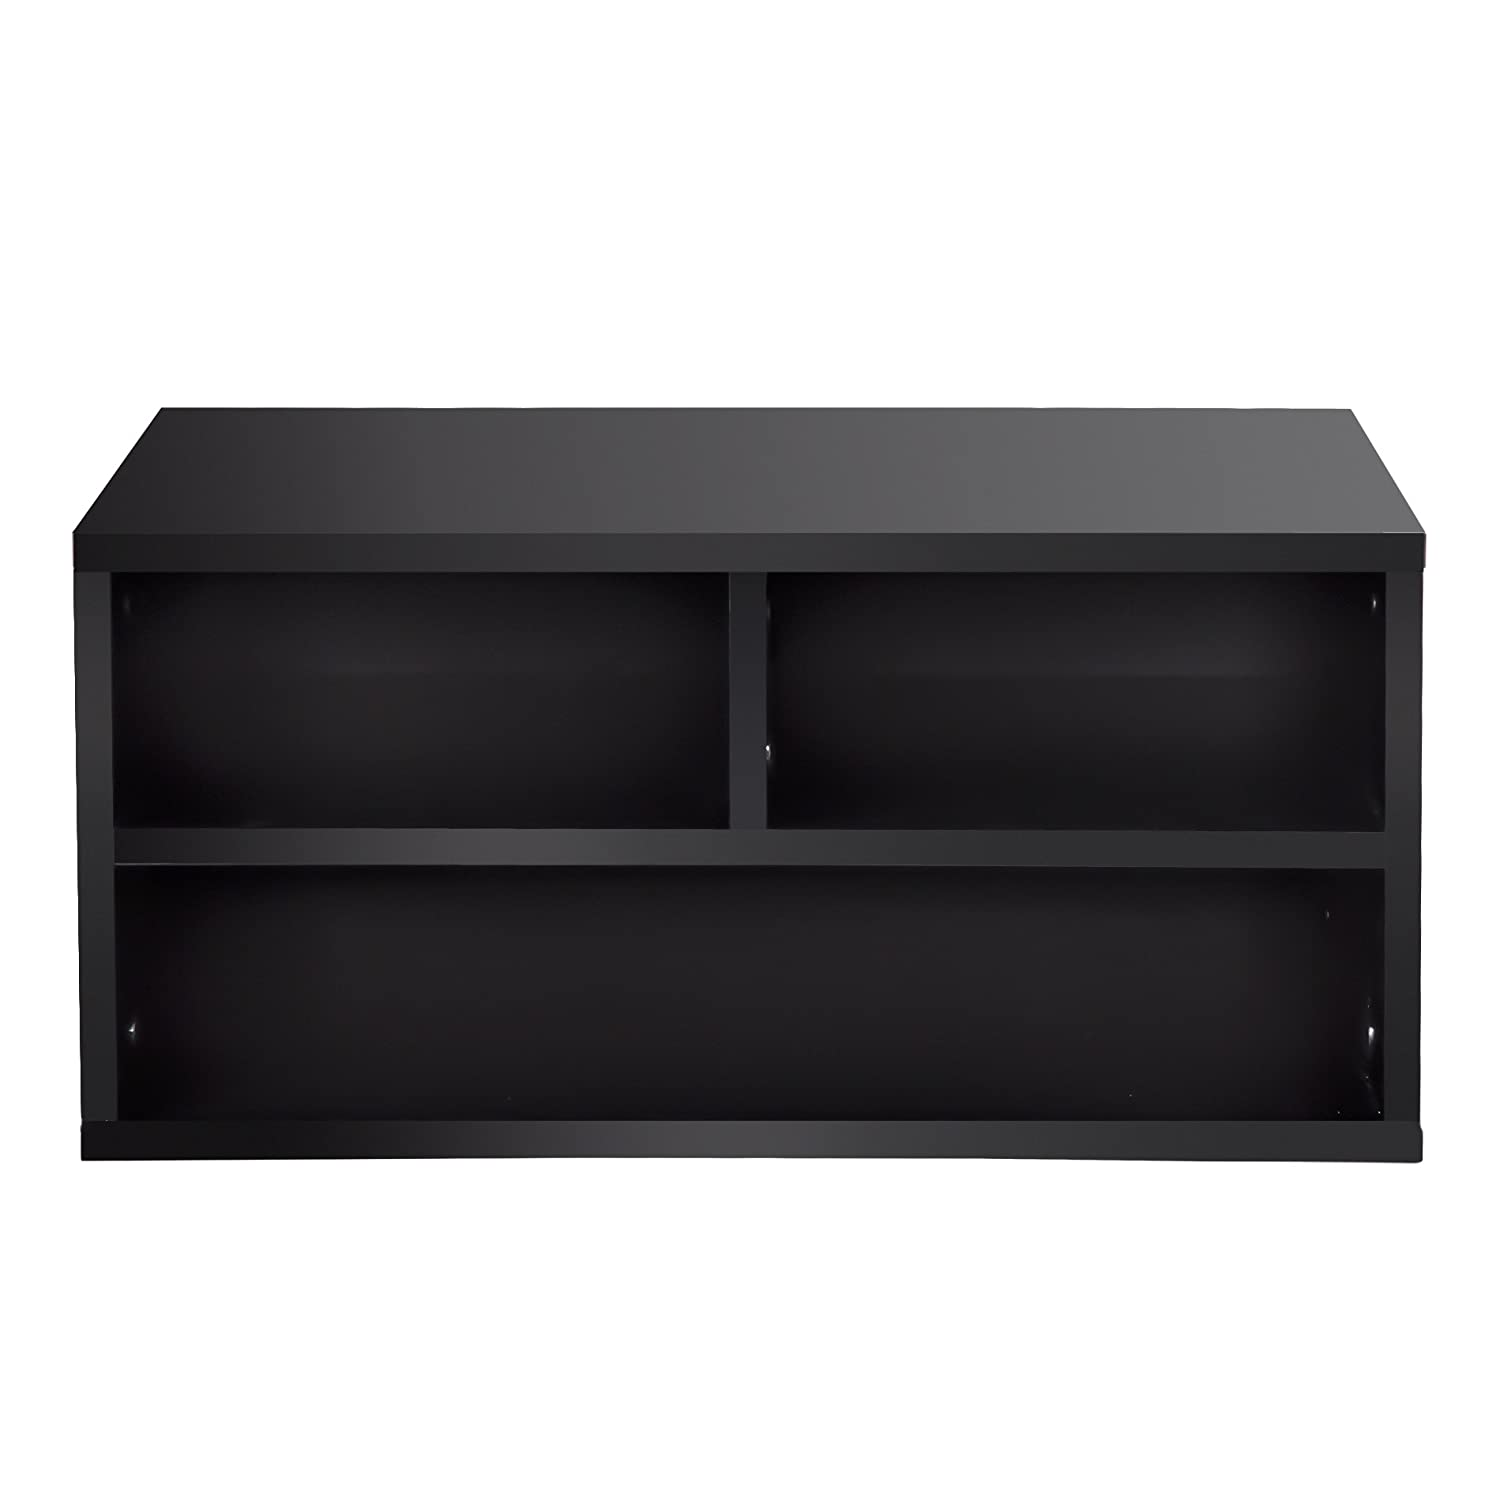 fitueyes wood two tier black printer fax stands workspace organizers do204701wb g electronics. Black Bedroom Furniture Sets. Home Design Ideas